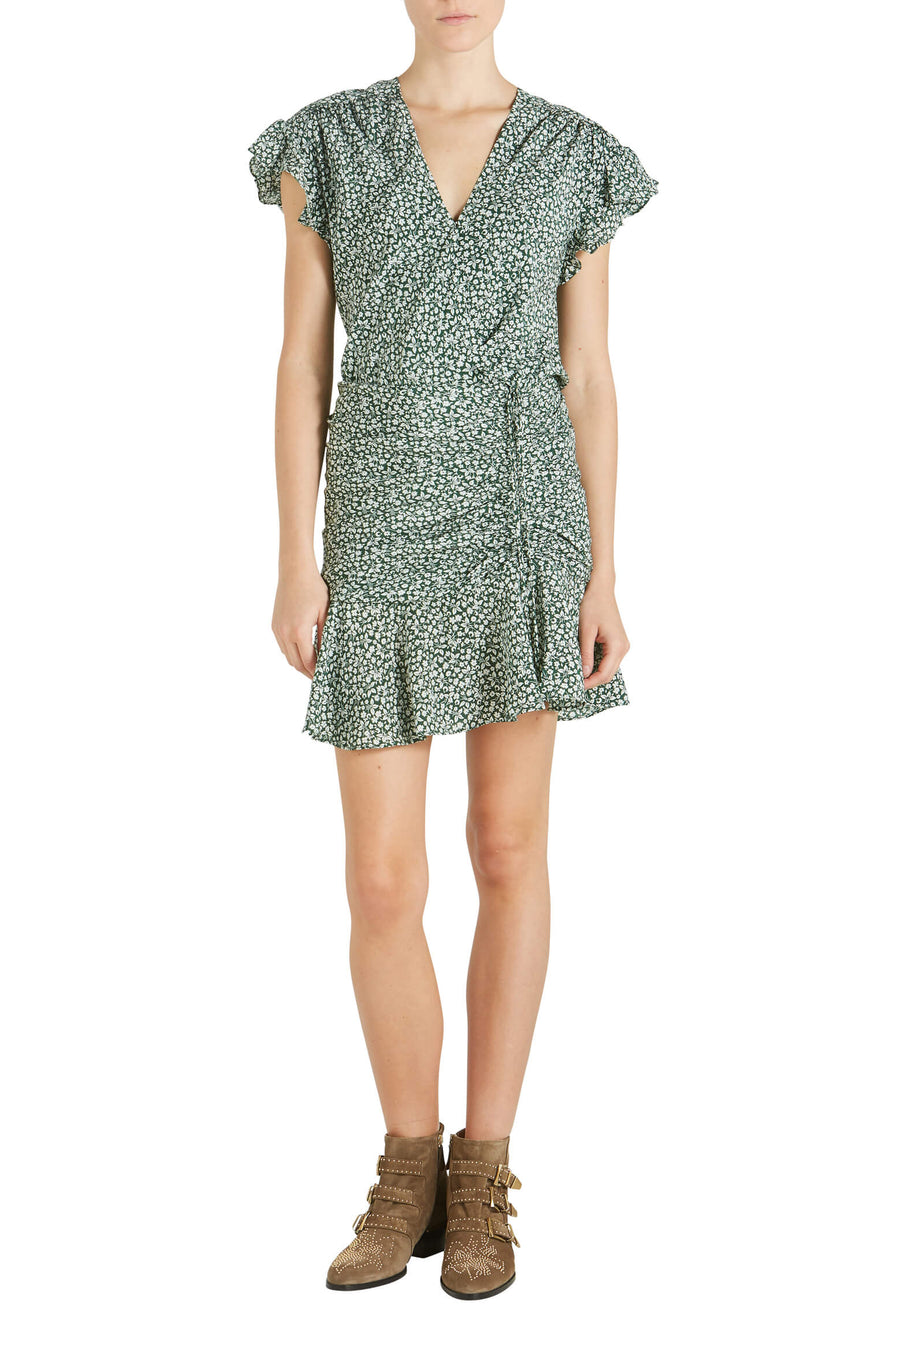 Veronica Beard Marla Dress from The New Trend